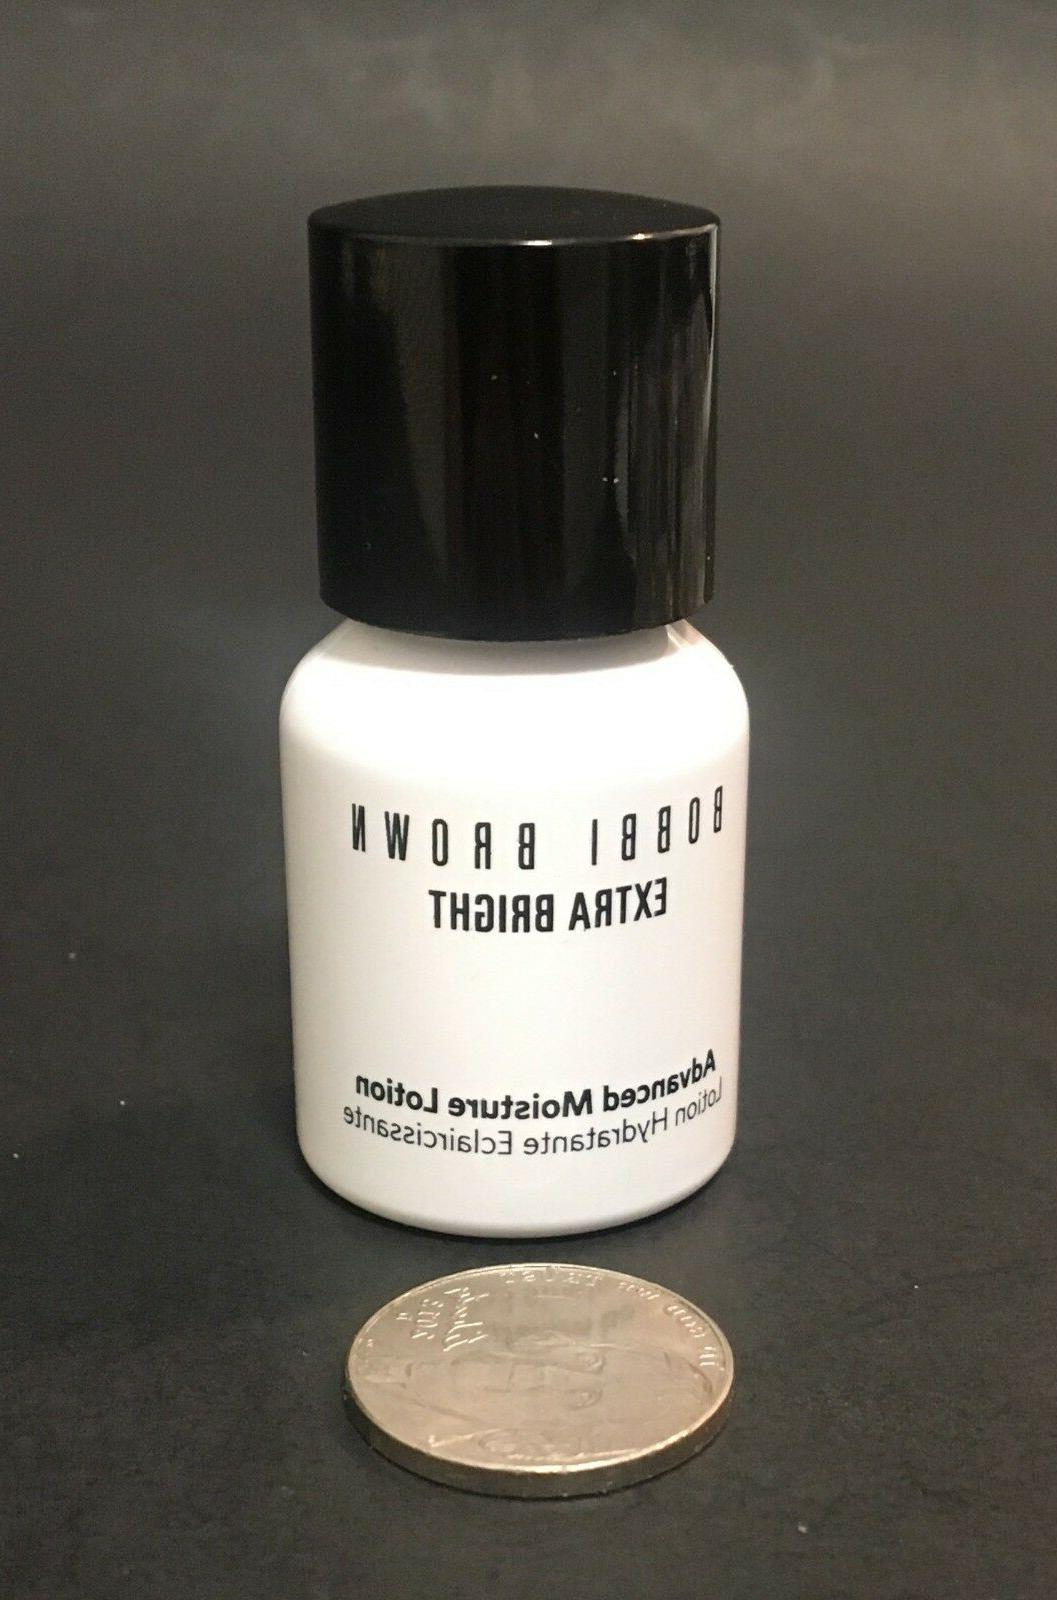 BOBBI BROWN EXTRA-BRIGHT ADVANCED MOISTURE LOTION .5 fl oz /